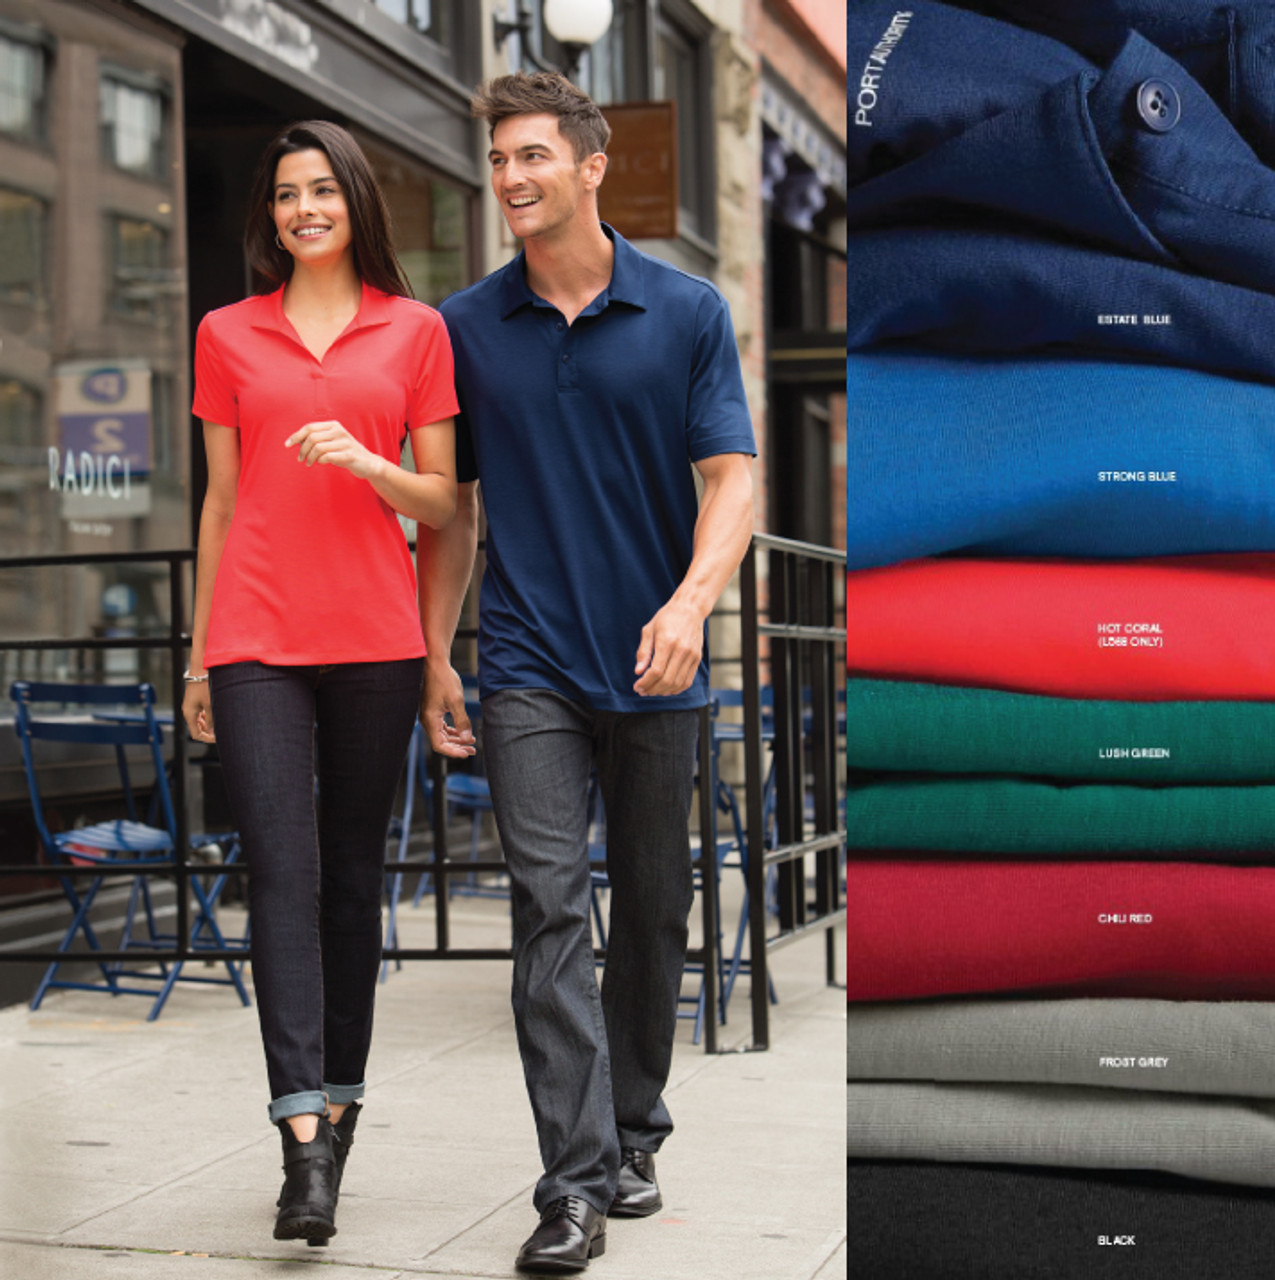 Stay active and comfortable in this polo spandex shirt!